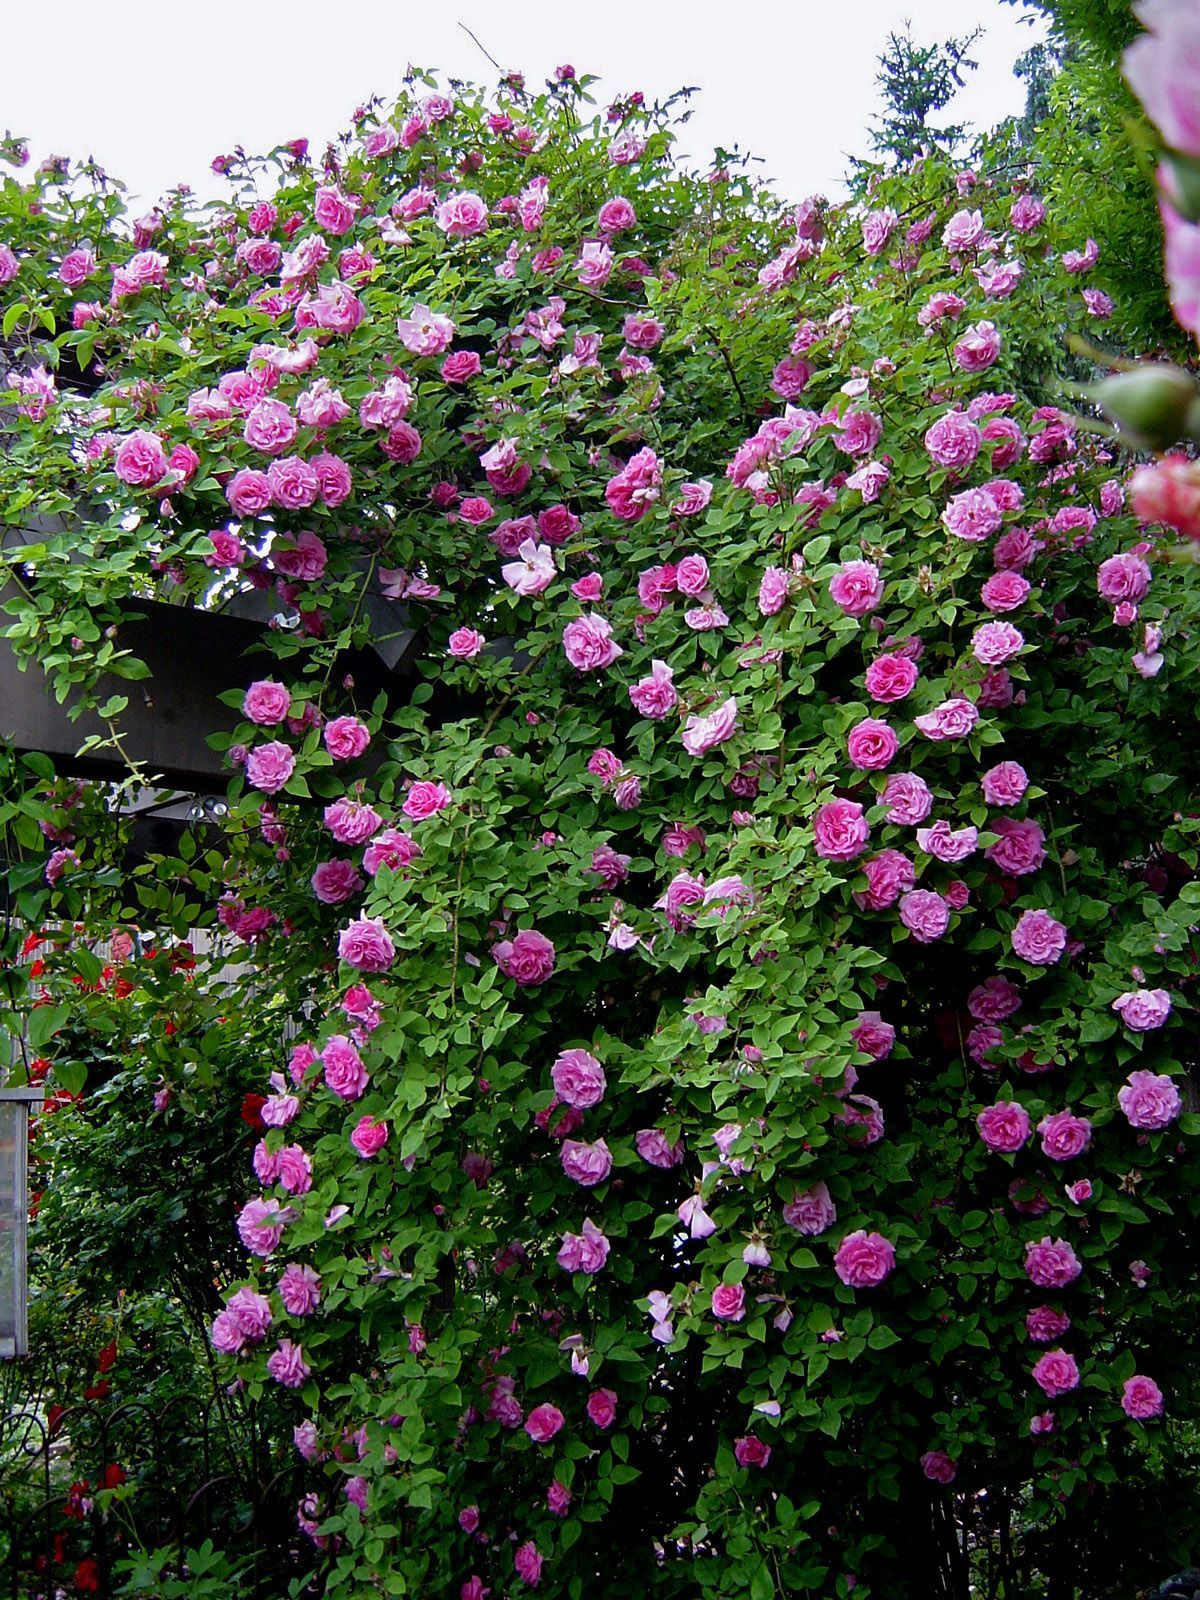 Zephirine Drouhin Shade Tolerant Thornless Climber For The Gazebo And Fence Rosesclimbing